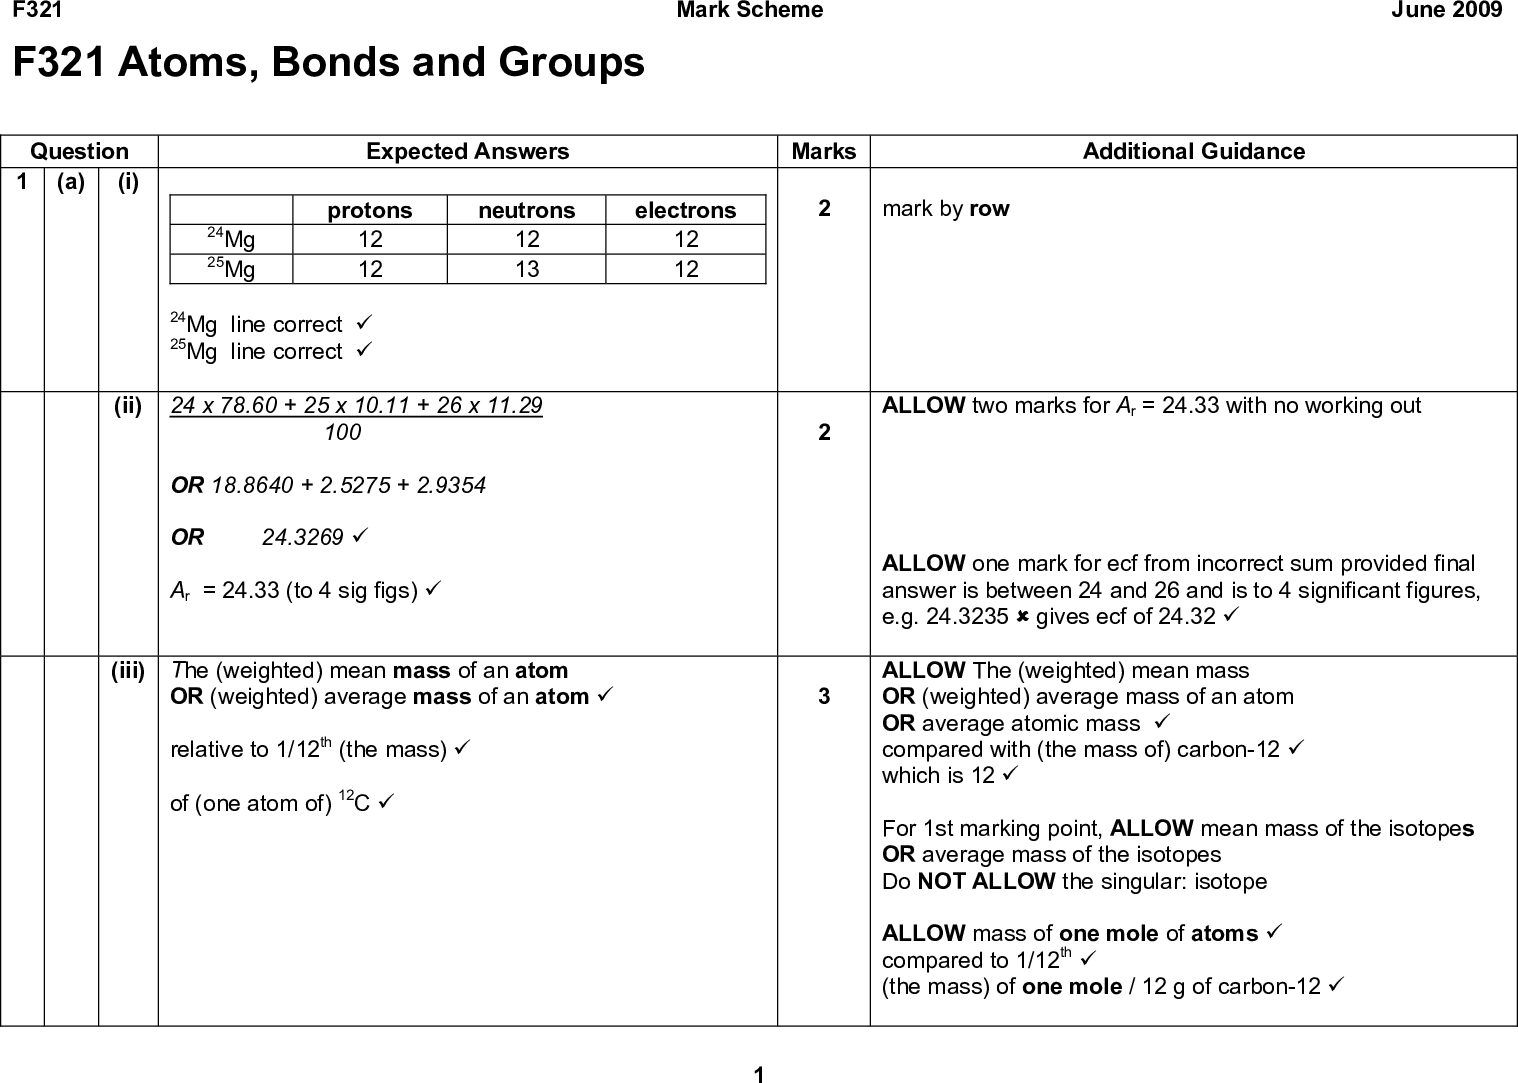 F321 F321 Atoms, Bonds and Groups Mark Scheme June 2009 Question 1 (i) (a) Expected Answers protons 12 12 neutrons 12 13 electrons 12 12 24Mg 25Mg 24Mg line correct (cid:57) 25Mg line correct (cid:57) (ii) 24 x 78.60 + 25 x 10.11 + 26 x 11.29 100 OR 18.8640 + 2.5275 + 2.9354 OR 24.3269 (cid:57) Ar = 24.33 (to 4 sig figs) (cid:57) (iii) The (weighted) mean mass of an atom OR (weighted) average mass of an atom (cid:57) relative to 1/12th (the mass) (cid:57) of (one atom of) 12C (cid:57) Marks mark by row Additional Guidance ALLOW two marks for Ar = 24.33 with no working out ALLOW one mark for ecf from incorrect sum provided final answer is between 24 and 26 and is to 4 significant figures, e.g. 24.3235 (cid:56) gives ecf of 24.32 (cid:57) ALLOW The (weighted) mean mass OR (weighted) average mass of an atom OR average atomic mass (cid:57) compared with (the mass of) carbon-12 (cid:57) which is 12 (cid:57) For 1st marking point, ALLOW mean mass of the isotopes OR average mass of the isotopes Do NOT ALLOW the singular: isotope ALLOW mass of one mole of atoms (cid:57) compared to 1/12th (cid:57) (the mass) of one mole / 12 g of carbon-12 (cid:57)<br />  F321 Question Expected Answers Marks Mark Scheme (b) (i) Mg (cid:57) oxidation number changes from 0 to (+)2 OR oxidation number increases by 2 (cid:57) (ii) Mg/solid dissolves OR Mg/solid disappears OR (Mg/solid) forms a solution (cid:57) bubbles OR fizzes OR effervesces OR gas produced (cid:57) (c) (i) M(MgSO4) = 120.4 OR 120 (g mol1) (cid:57) mol MgSO4 = 1.51 = 0.0125 mol (cid:57) 120.4 (ii) 1.57 = 0.0872(2) (mol) (cid:57) 18.0 (iii) x = 7 (cid:57) Total 15 June 2009 Additional Guidance mass of one mole of atoms (cid:57) 1/12th (cid:57) the mass of one mole / 12 g of carbon-12 (cid:57) ALLOW correct oxidation numbers shown in equation 2nd mark is dependent on identification of Mg IGNORE electrons IGNORE metal reacts IGNORE temperature change IGNORE steam produced DO NOT ALLOW carbon dioxide gas produced DO NOT ALLOW hyd